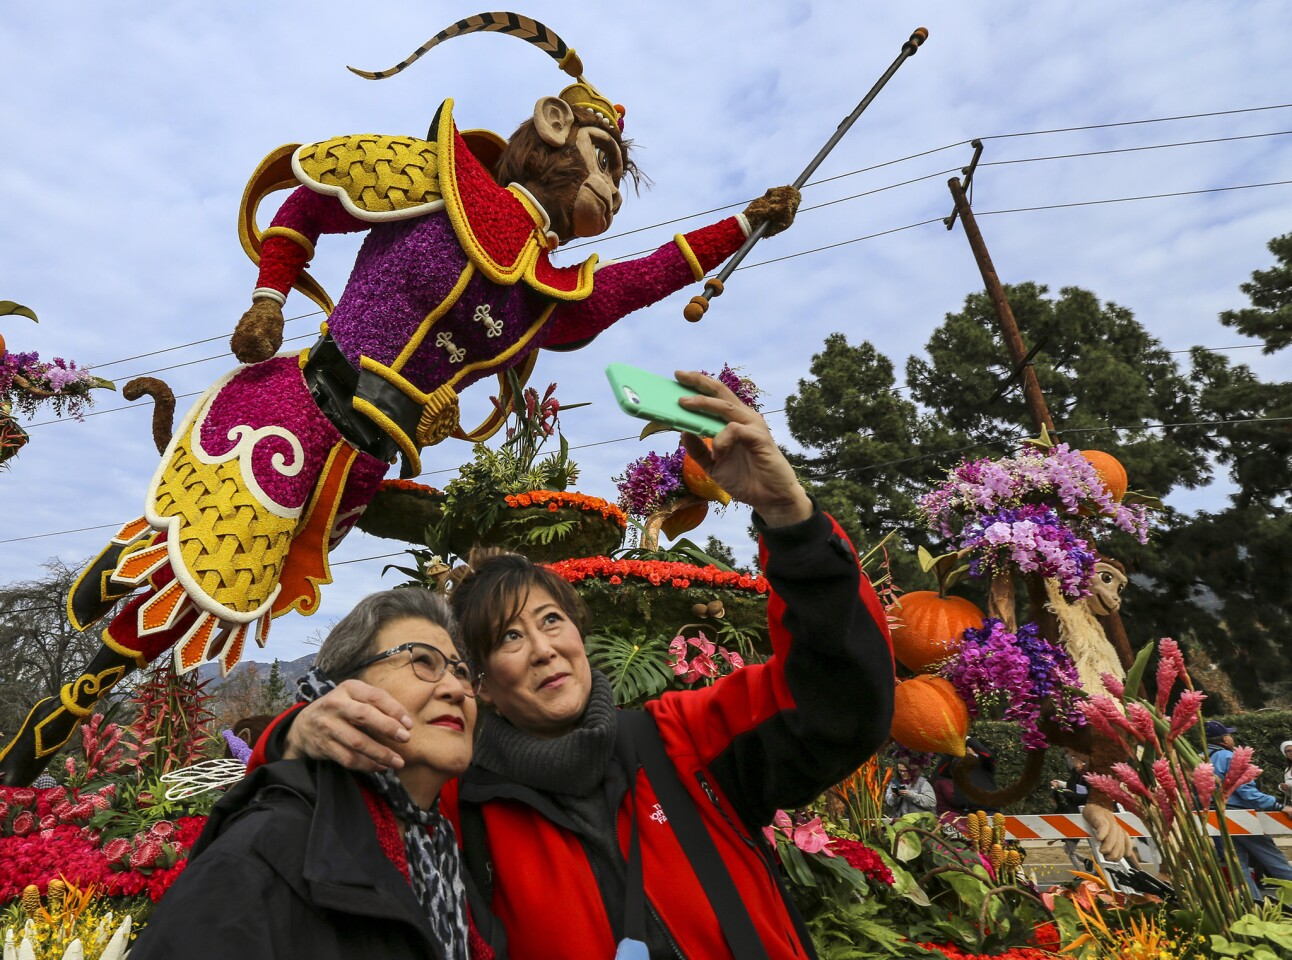 Natalie Nakatani, right, takes a selfie with her mother, Fujiko Nakatani, at the Showcase of Floats, where visitors were able to get an up-close view of Rose Parade floats Tuesday morning.